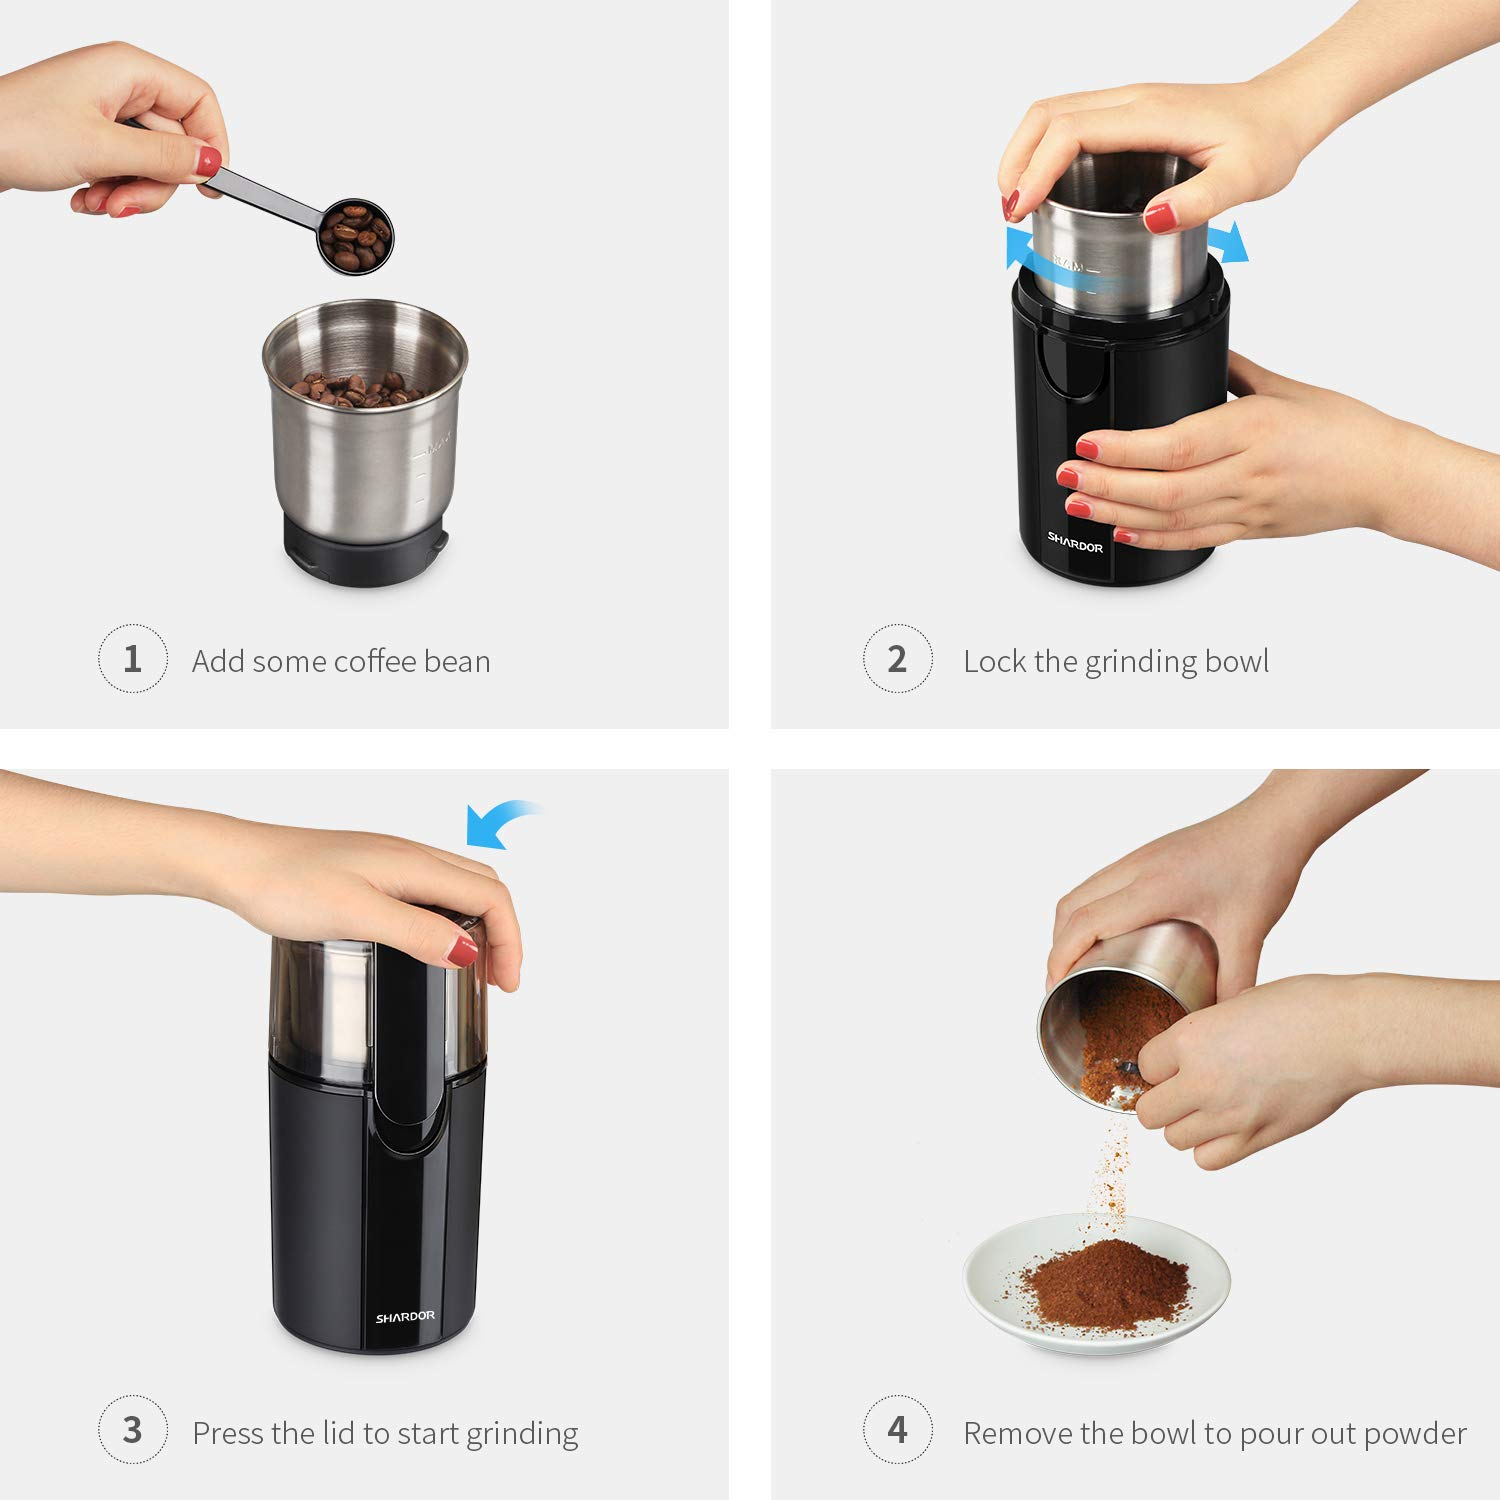 SHARDOR-Coffee-Grinder-Electric-200W-Removable-Bowl-with-Stainless-Steel-Blade-Grinder-for-Coffee-Bean-Spice-Seed-Nut-Herb-Pepper-70g-Black